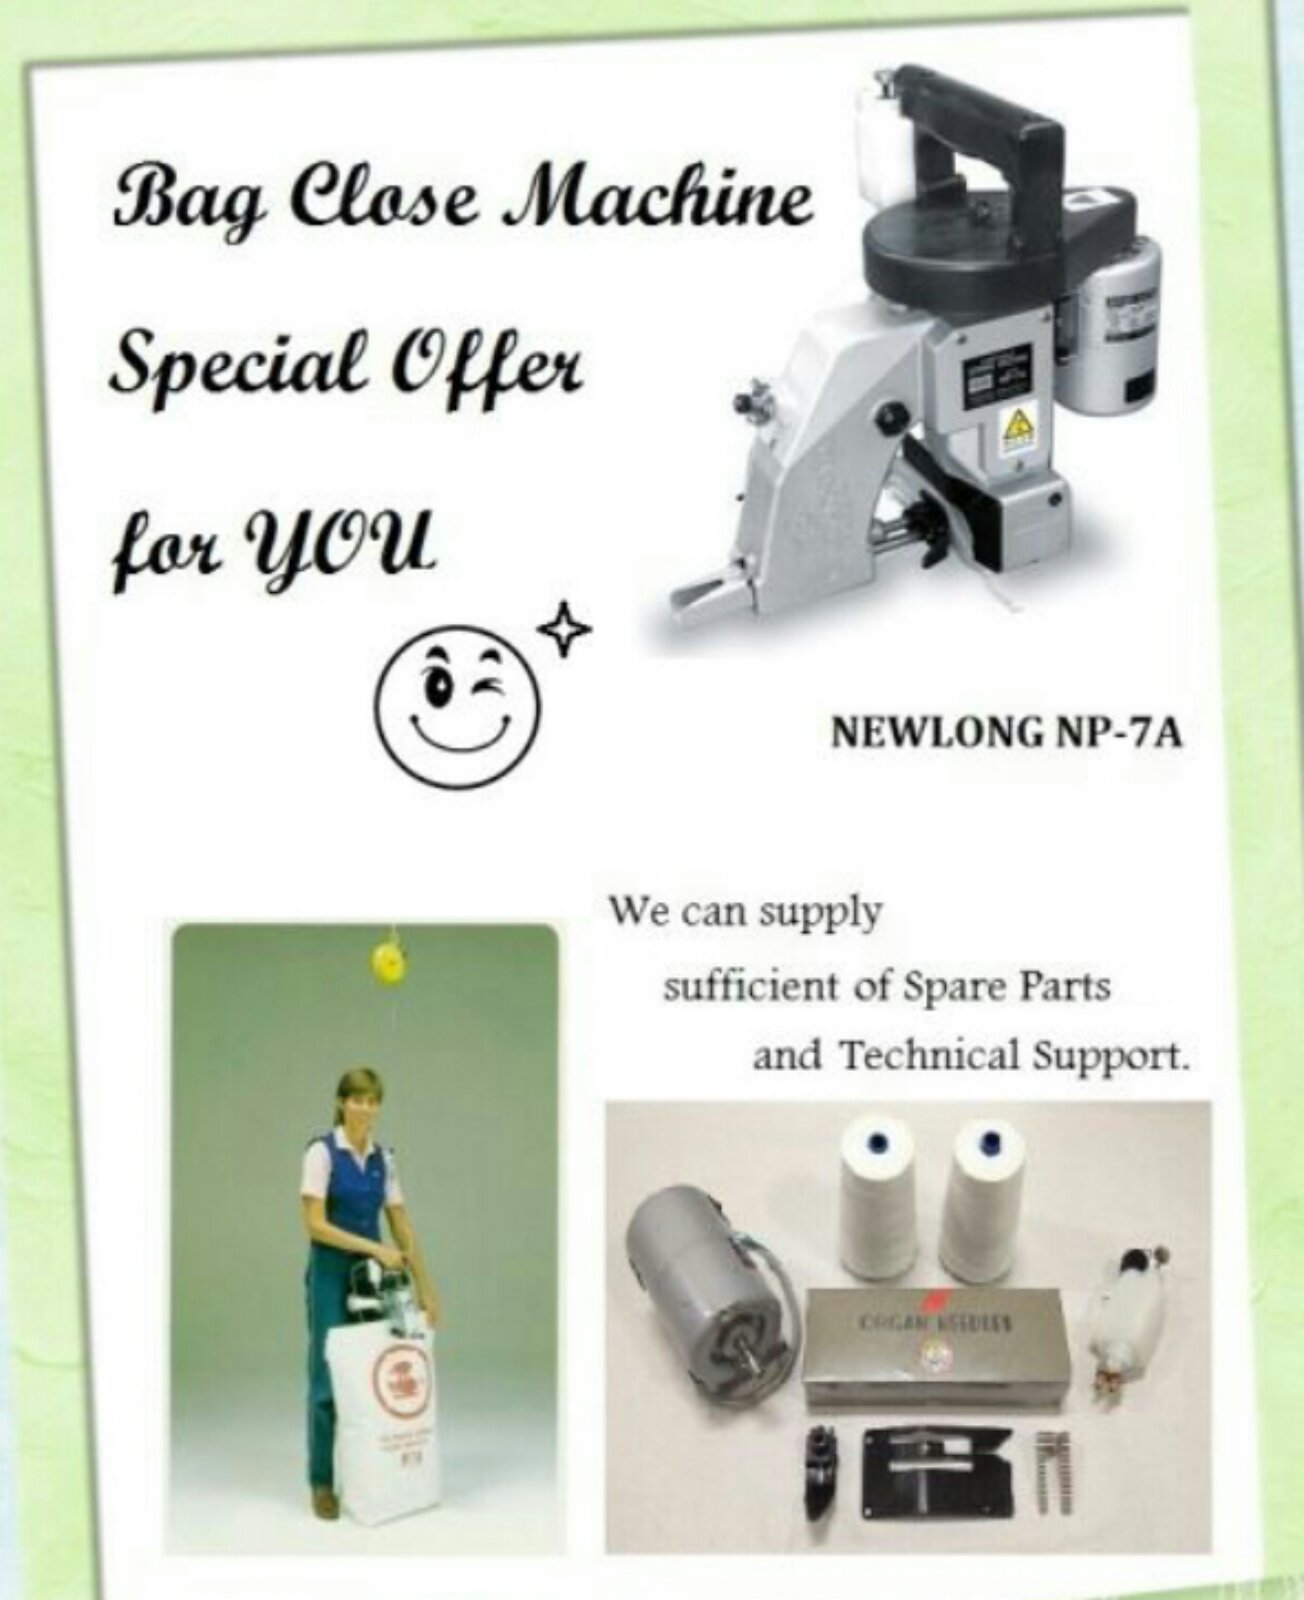 New Long Bag Colsing Machine@@